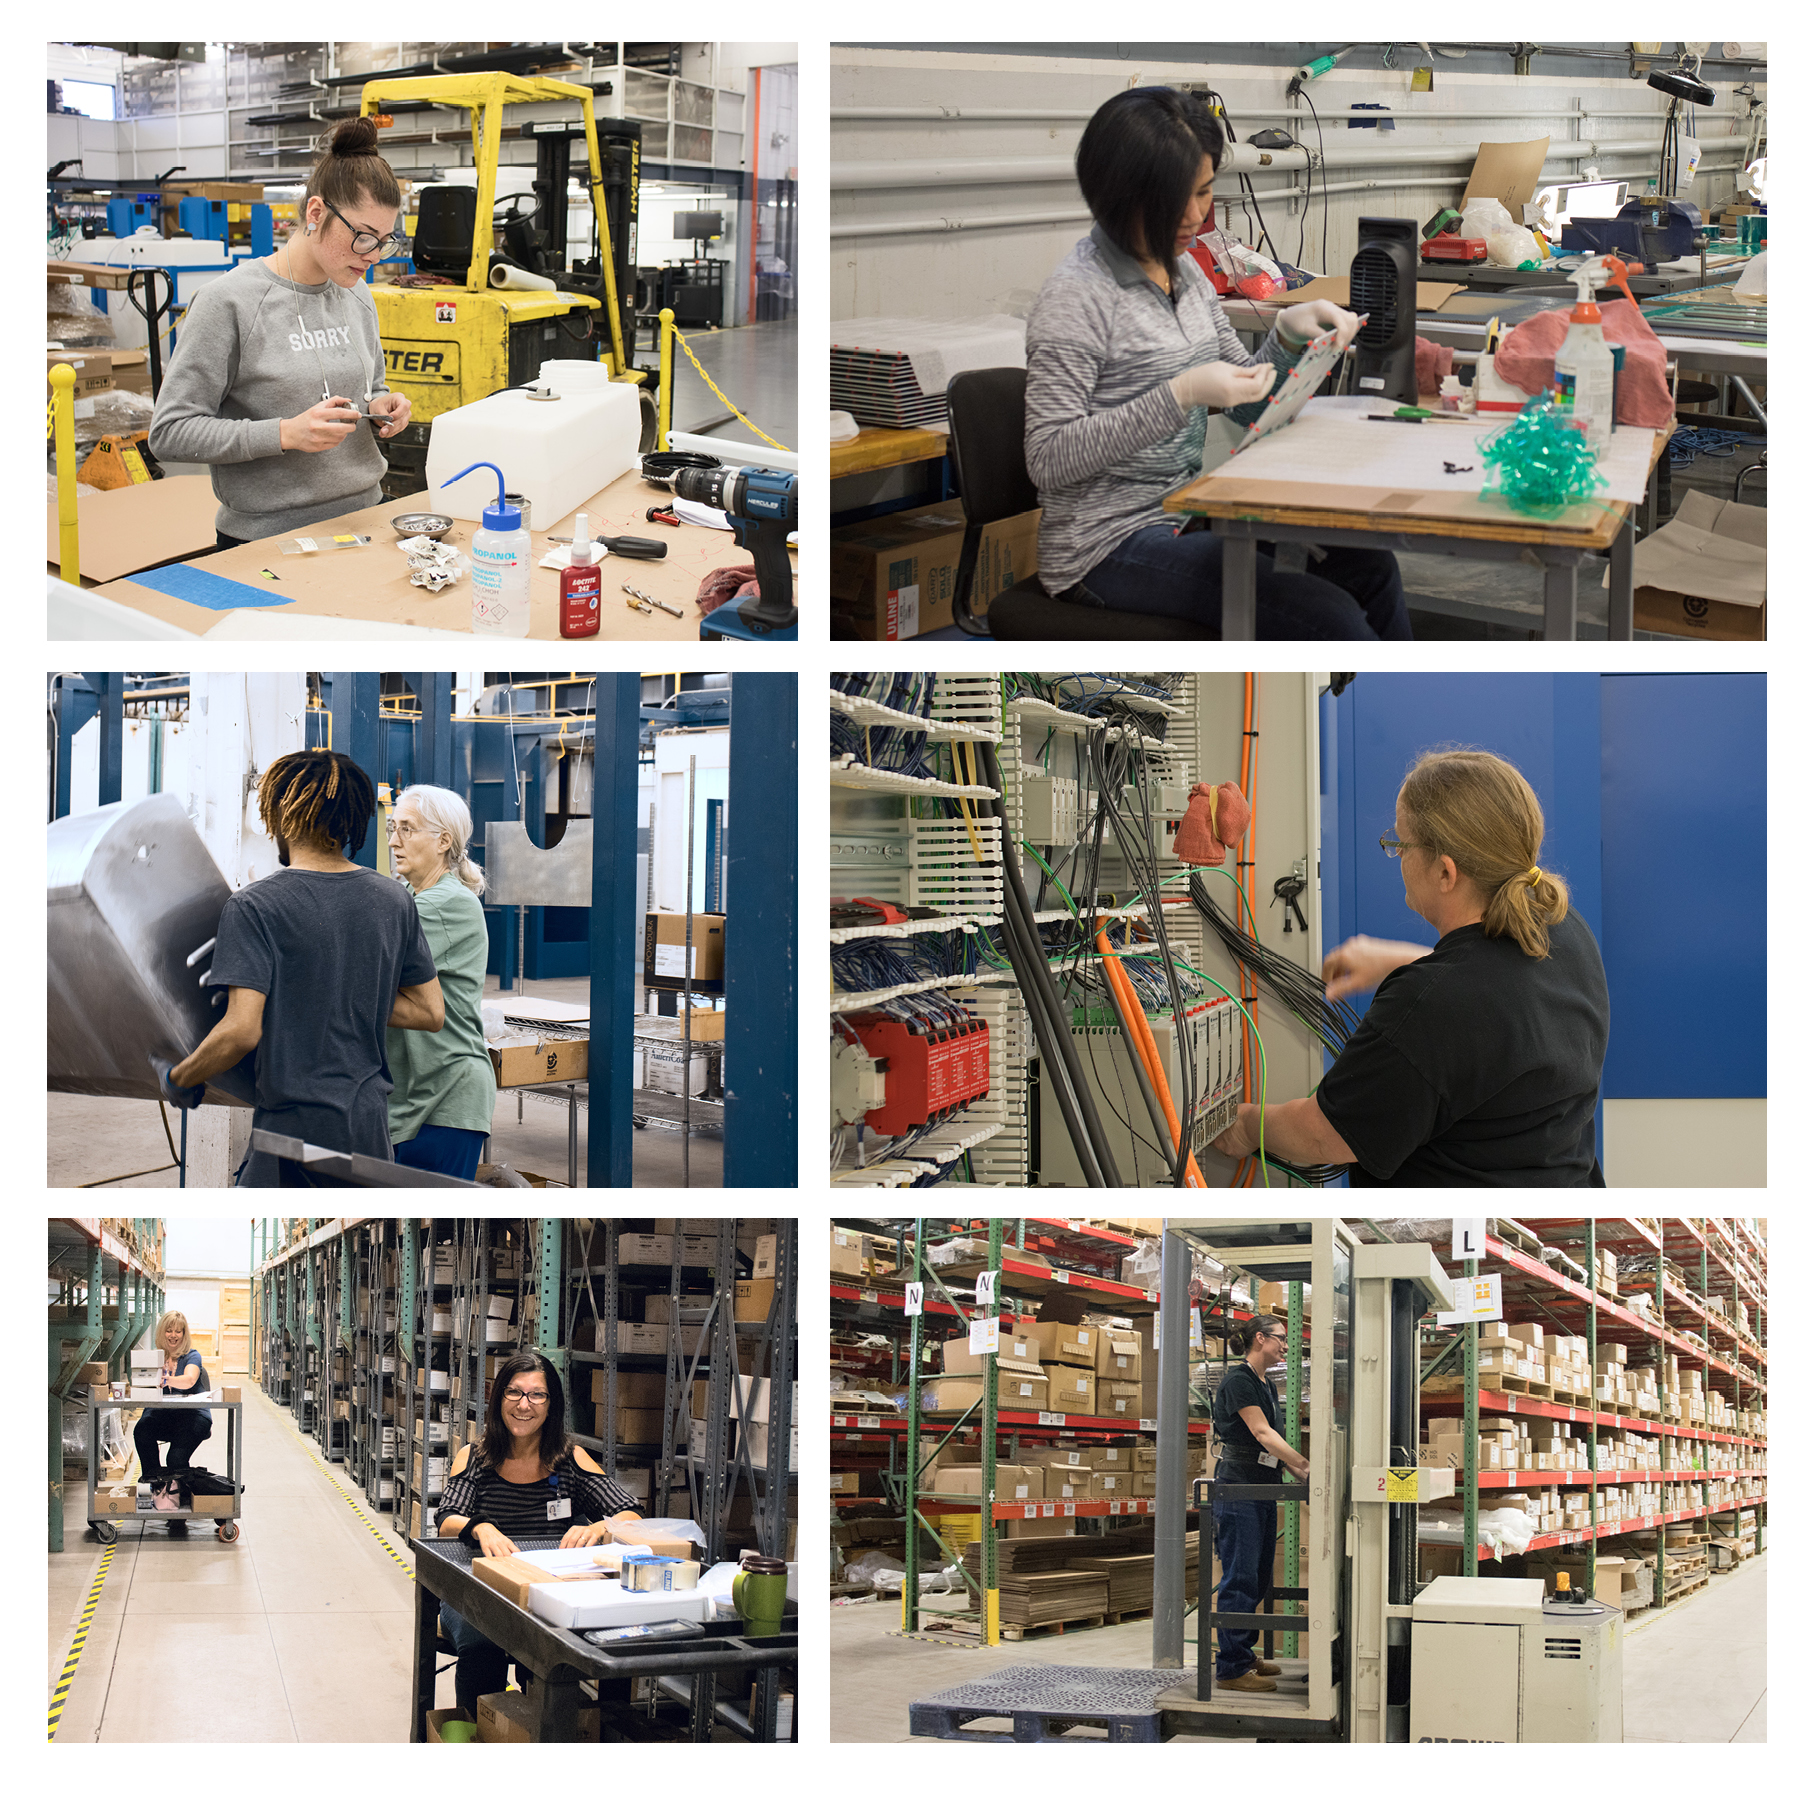 Six images of women working on our manufacturing floors.  (Starting from top left, assembler with screw, painter preparing metal part, woman lifting large metal part with coworker onto paint line, woman assembling electrical controls, women organizing in warehouse, women driving tow motor.)